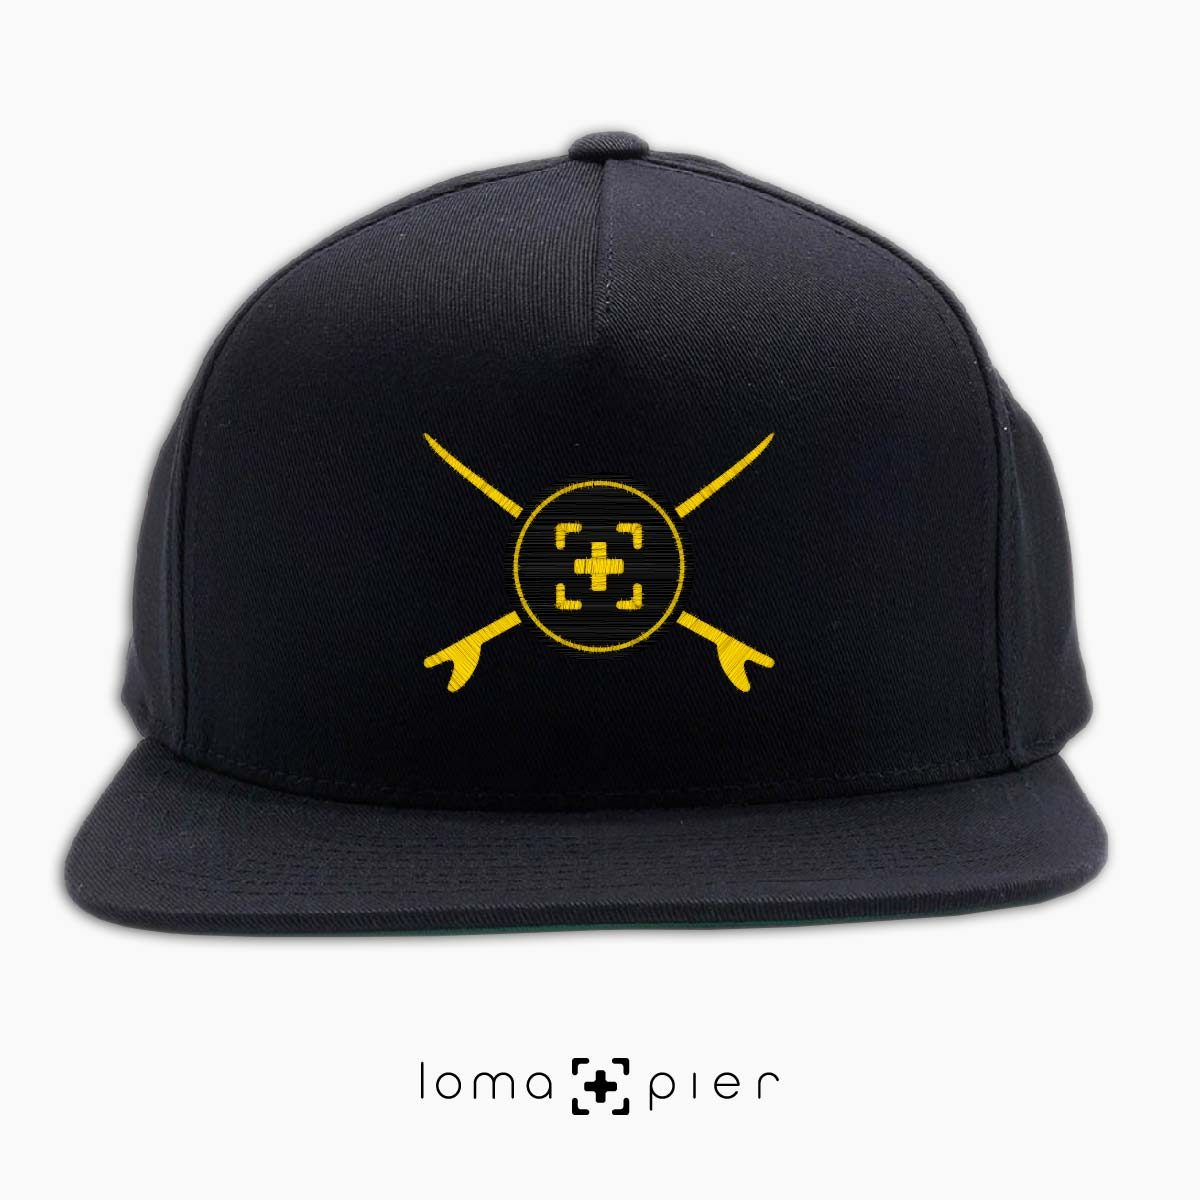 SURFERS BADGE hermosa beach snapback hat in black by lomapier hat store